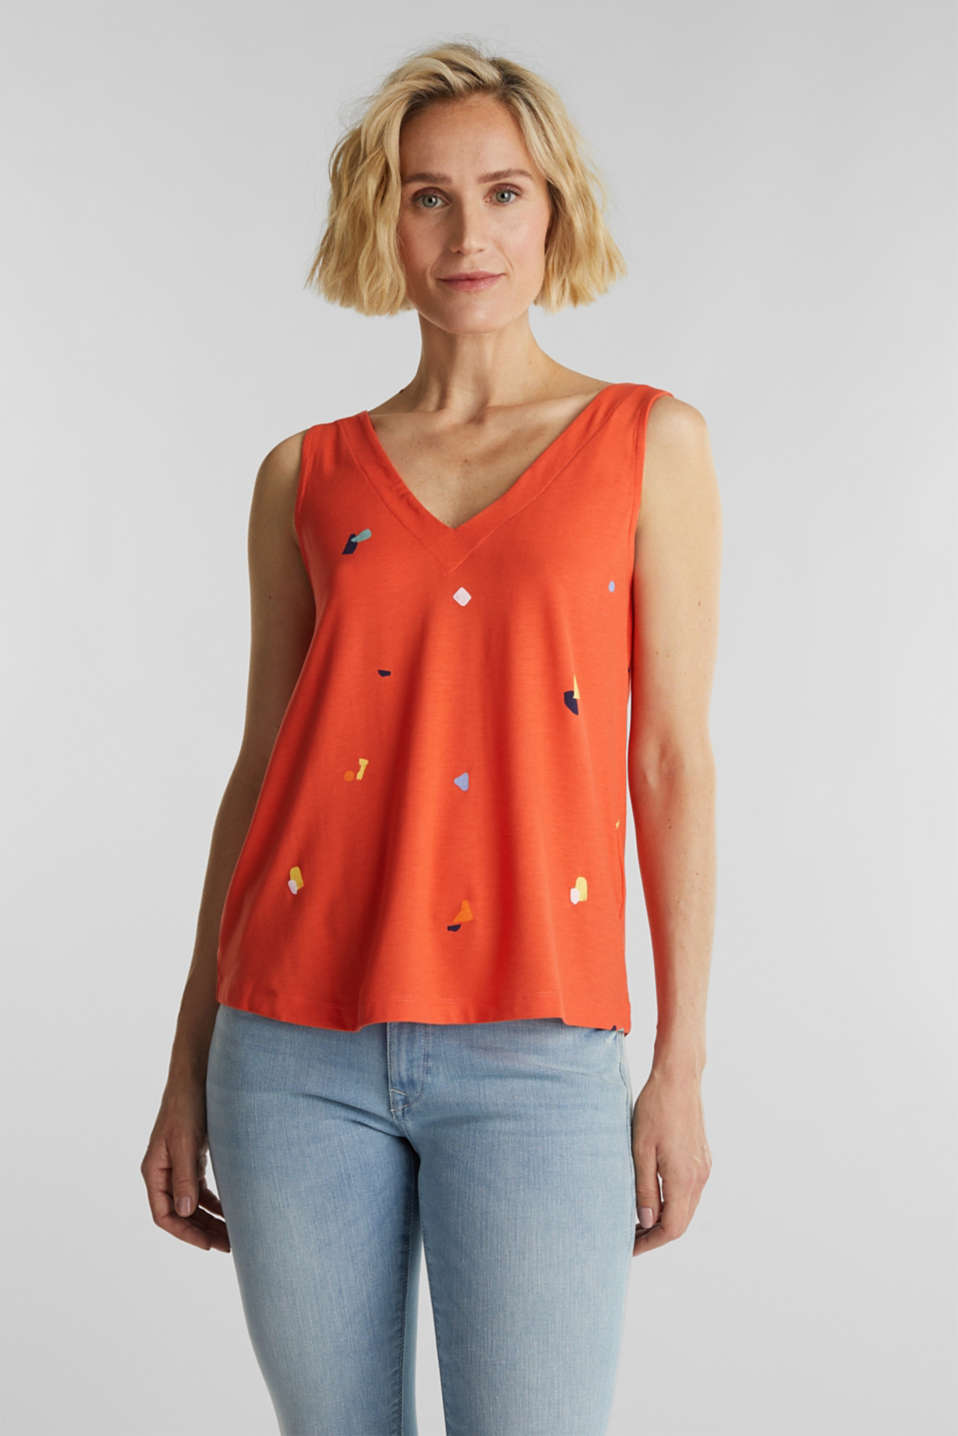 Esprit - Print top with a bow detail